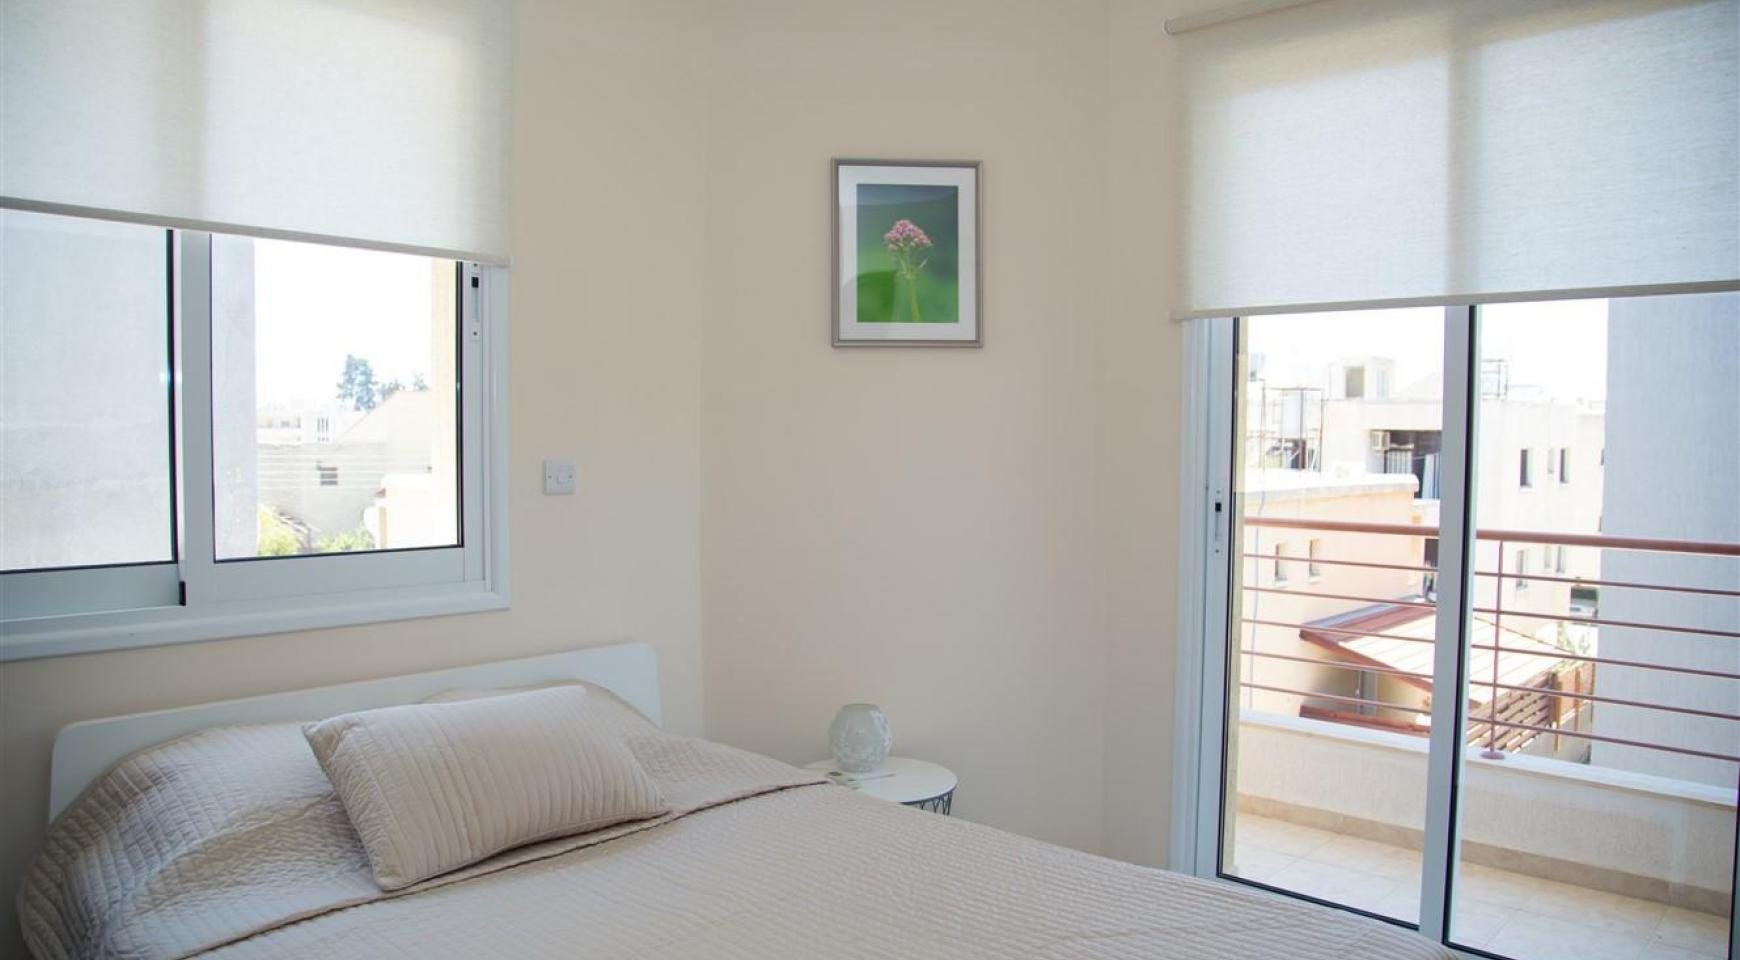 Luxury One Bedroom Apartment Frida 103 in the Tourist Area - 8